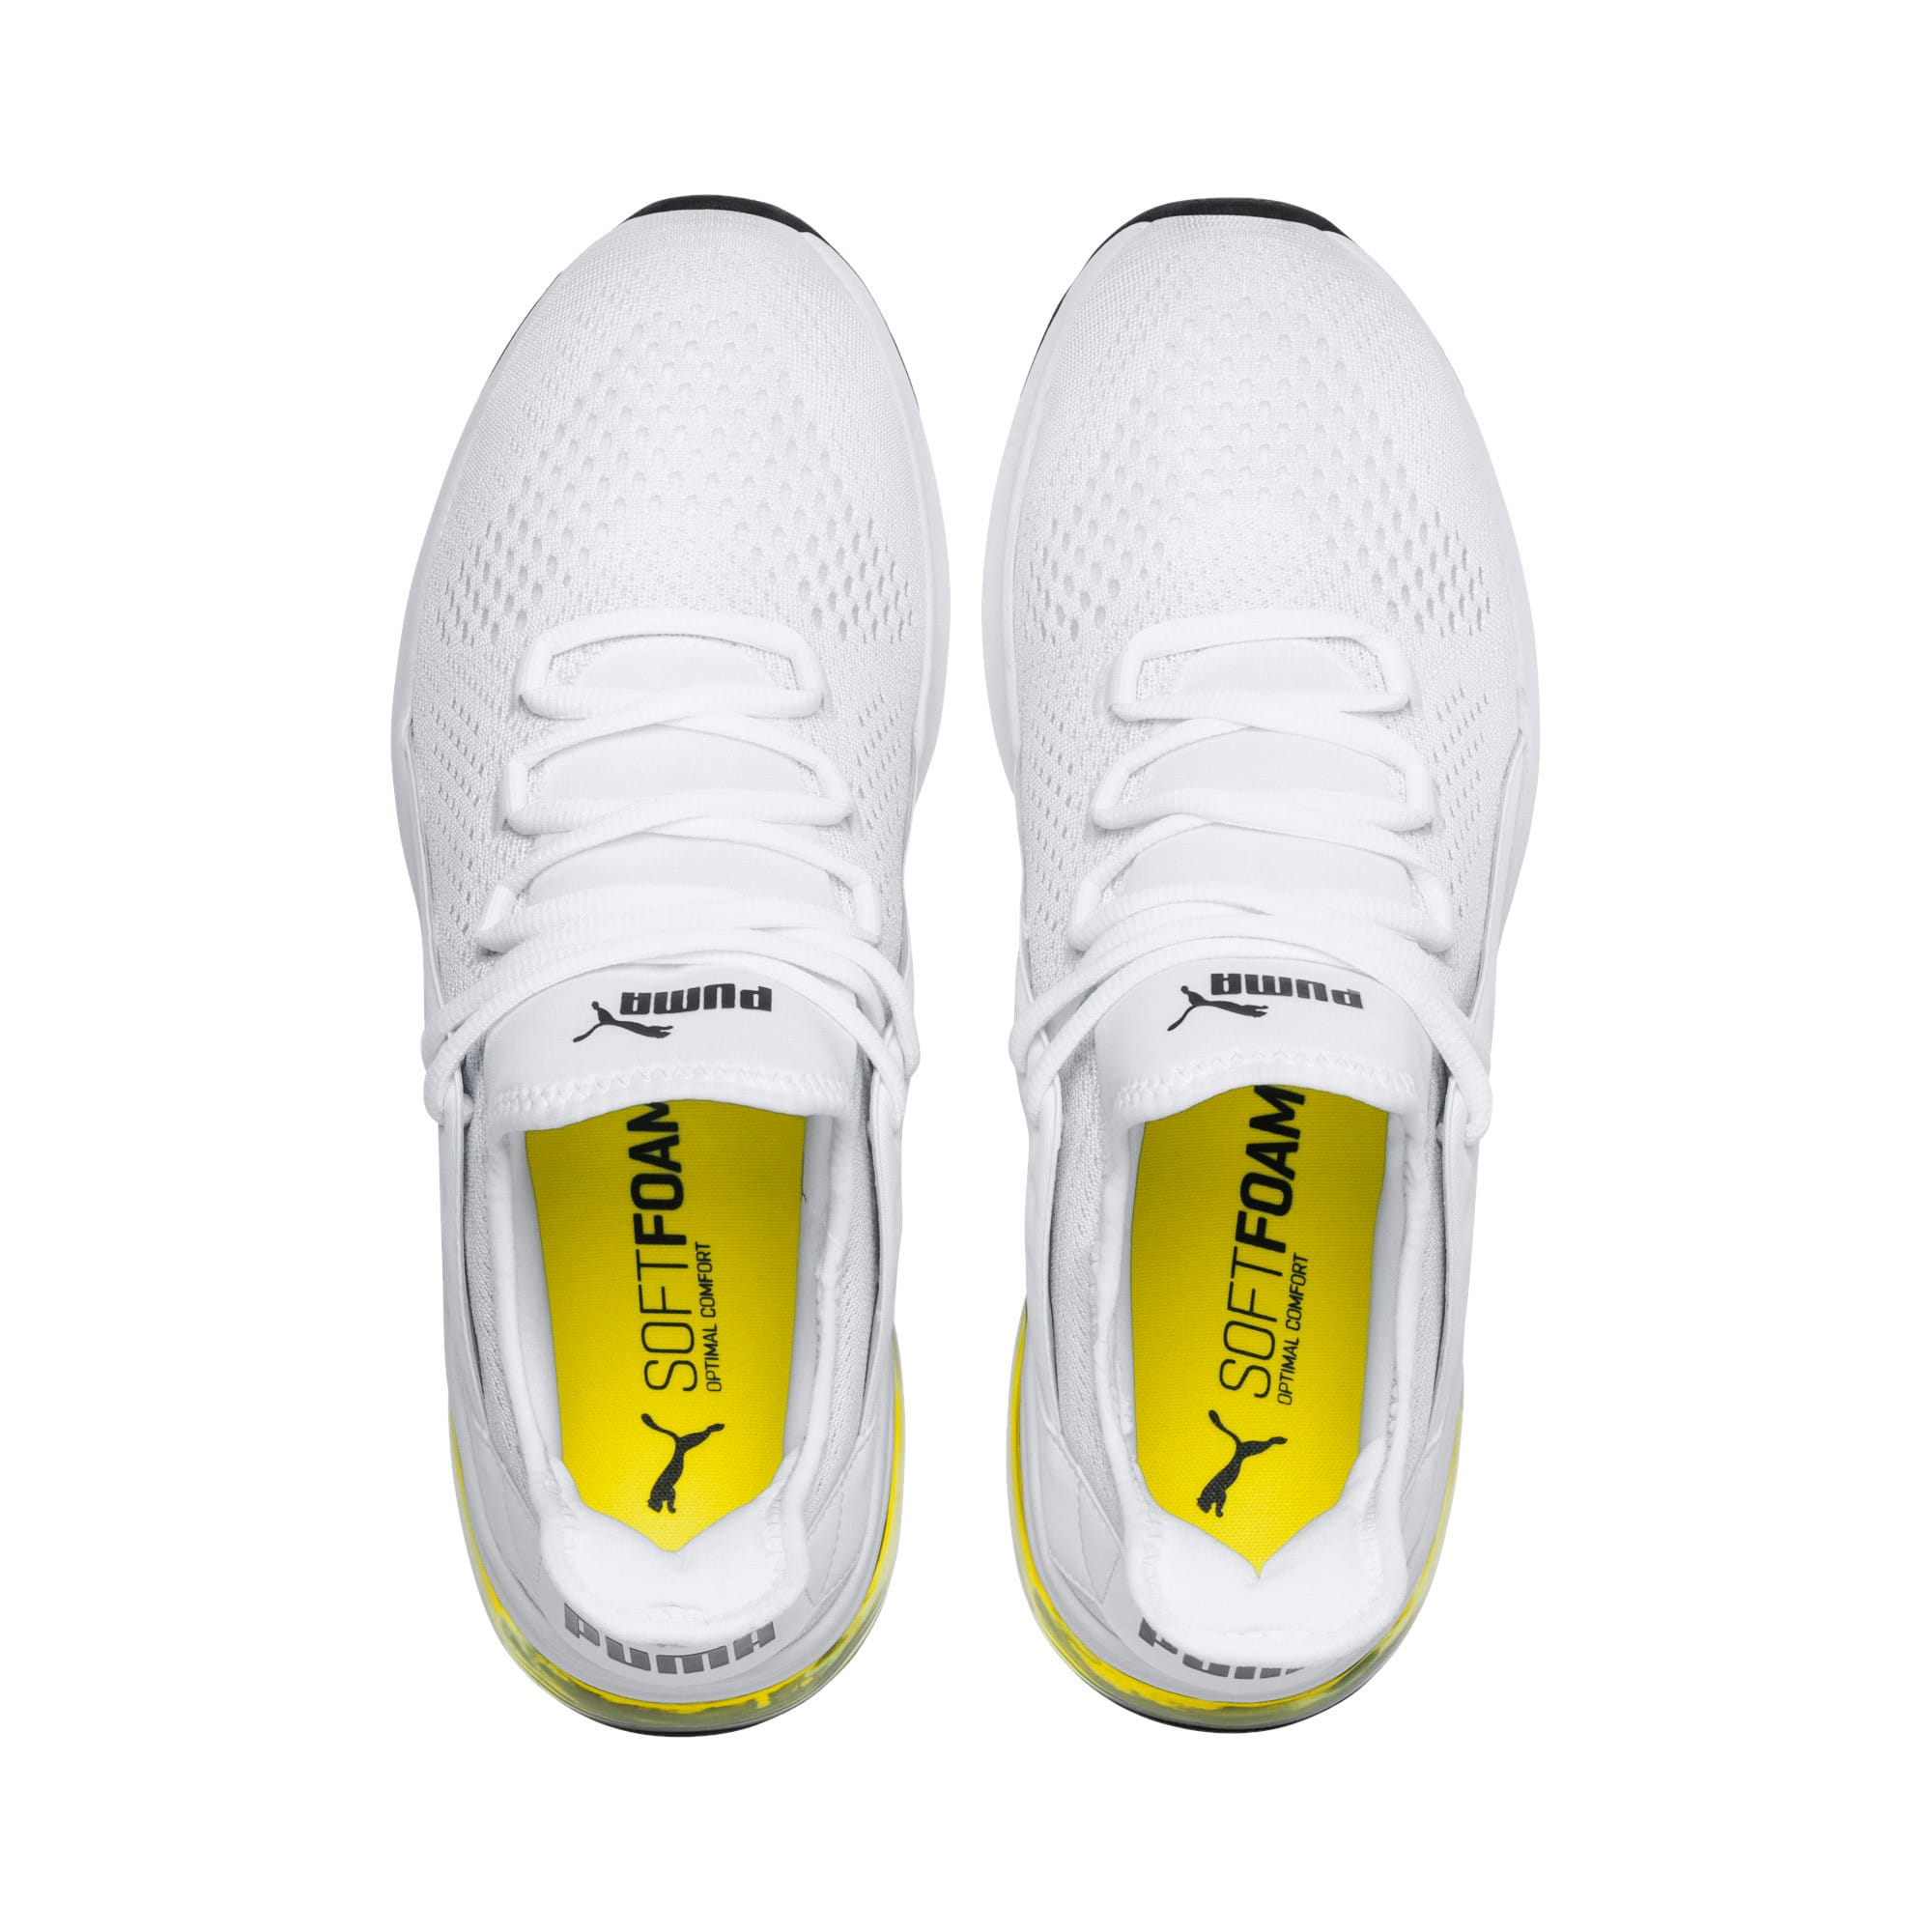 Thumbnail 6 of Electron Street Eng Mesh, Puma White-Puma Black-Yellow, medium